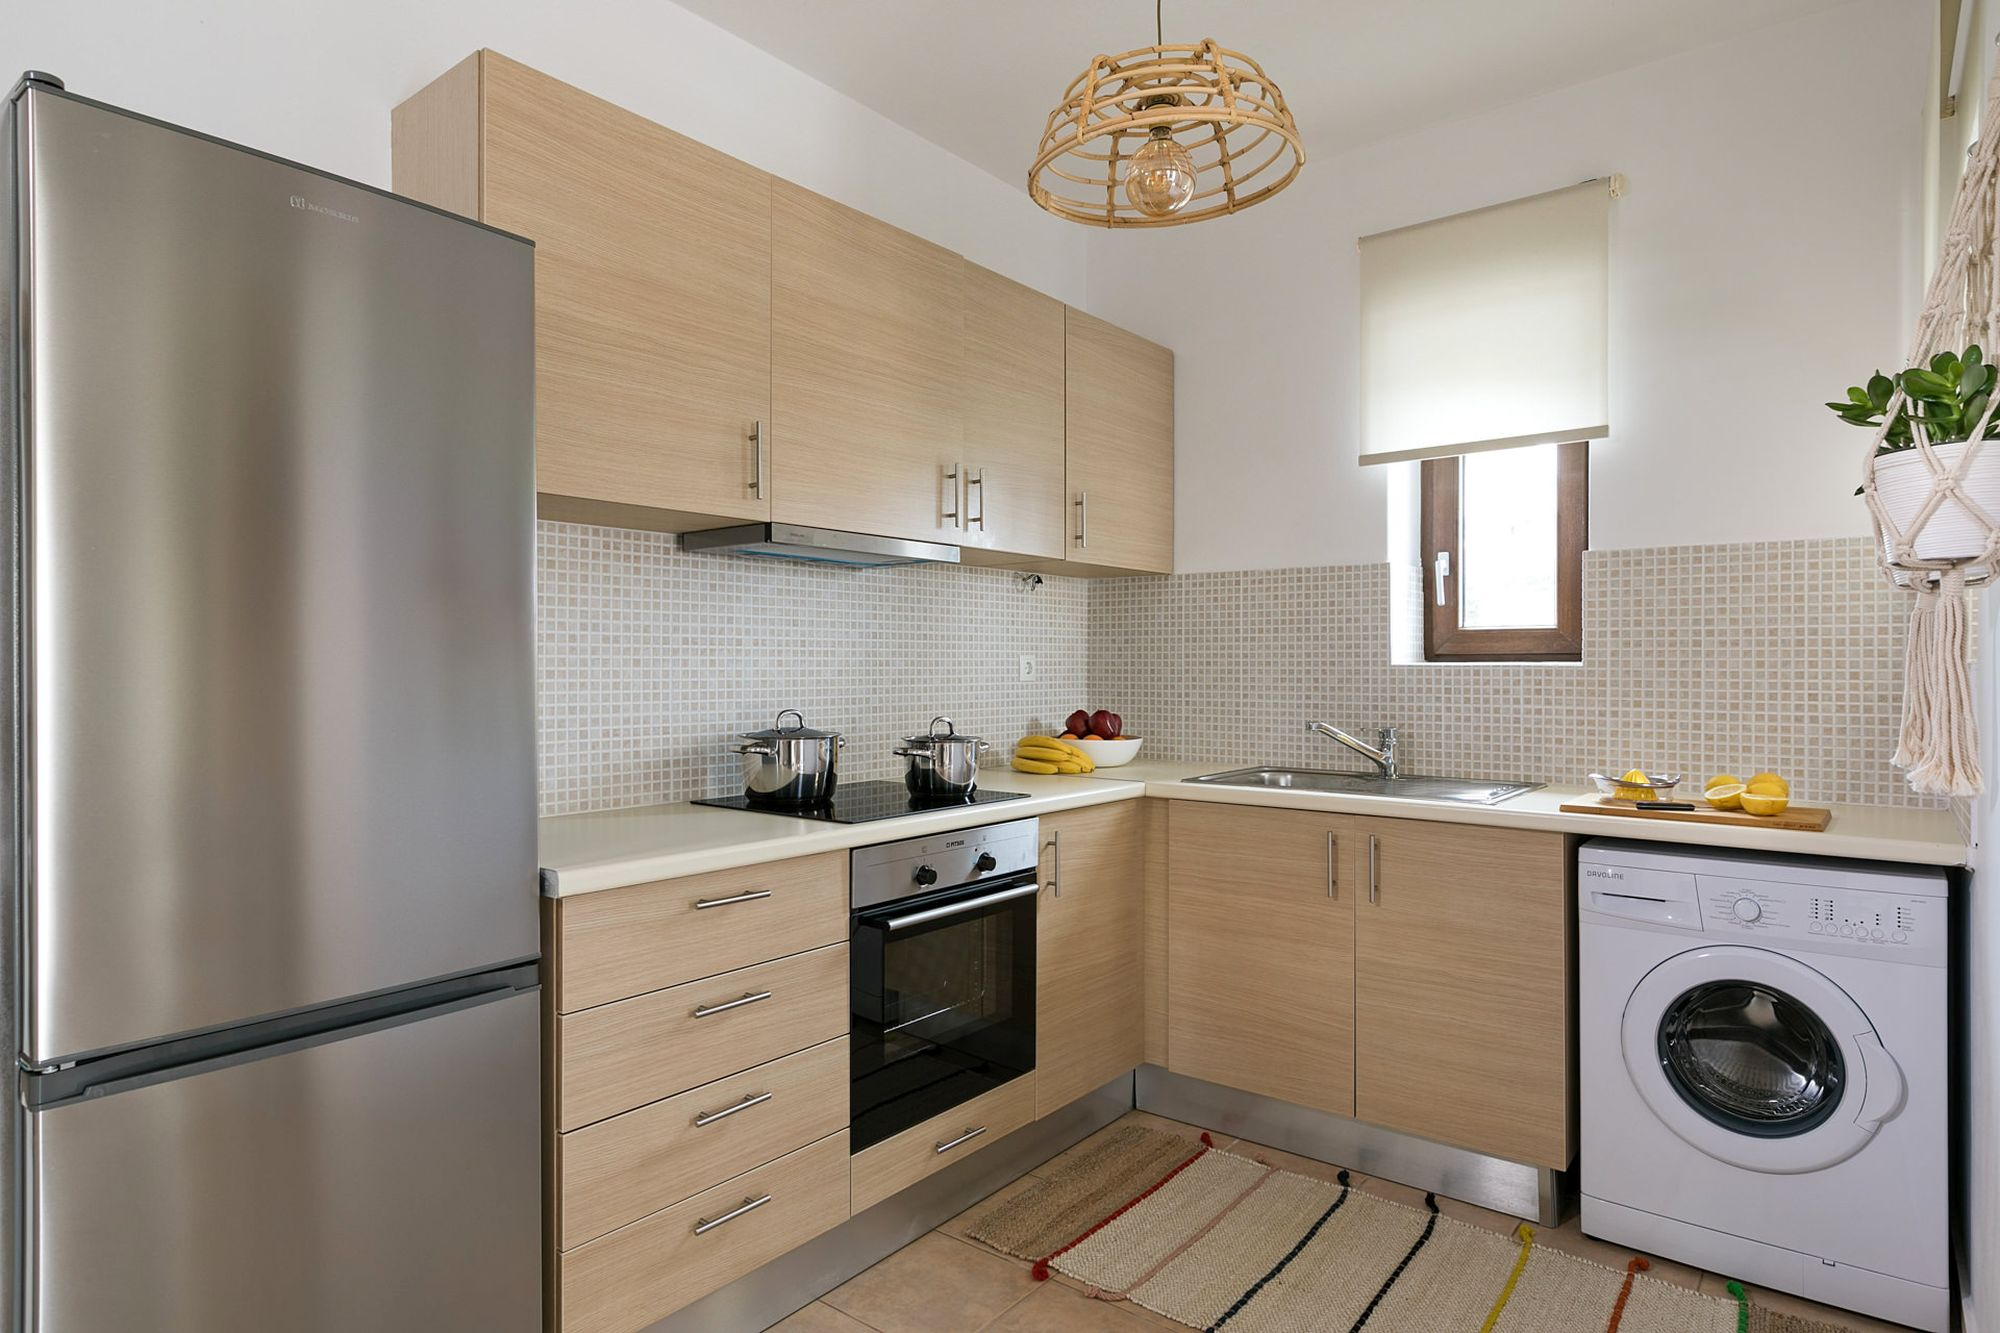 Modern kitchen with beige cabinets, a big inox fridge, an electric cooker oven and a washing machine.